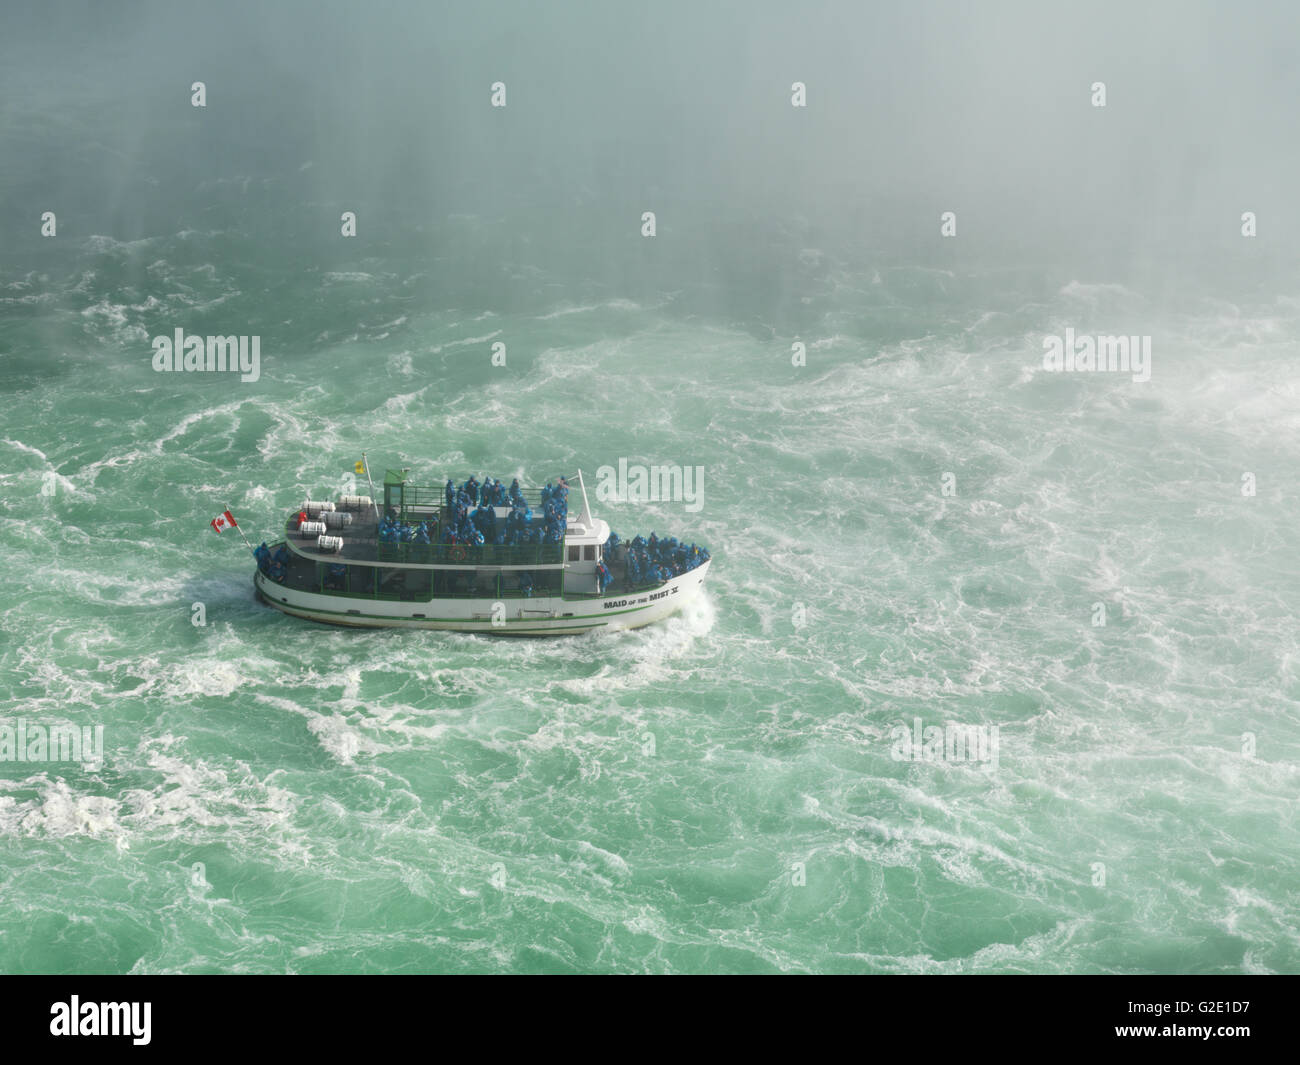 People on the tour boat 'Maid of the Mist' approaching the Niagara Falls, Niagara Falls, Ontario Province, - Stock Image